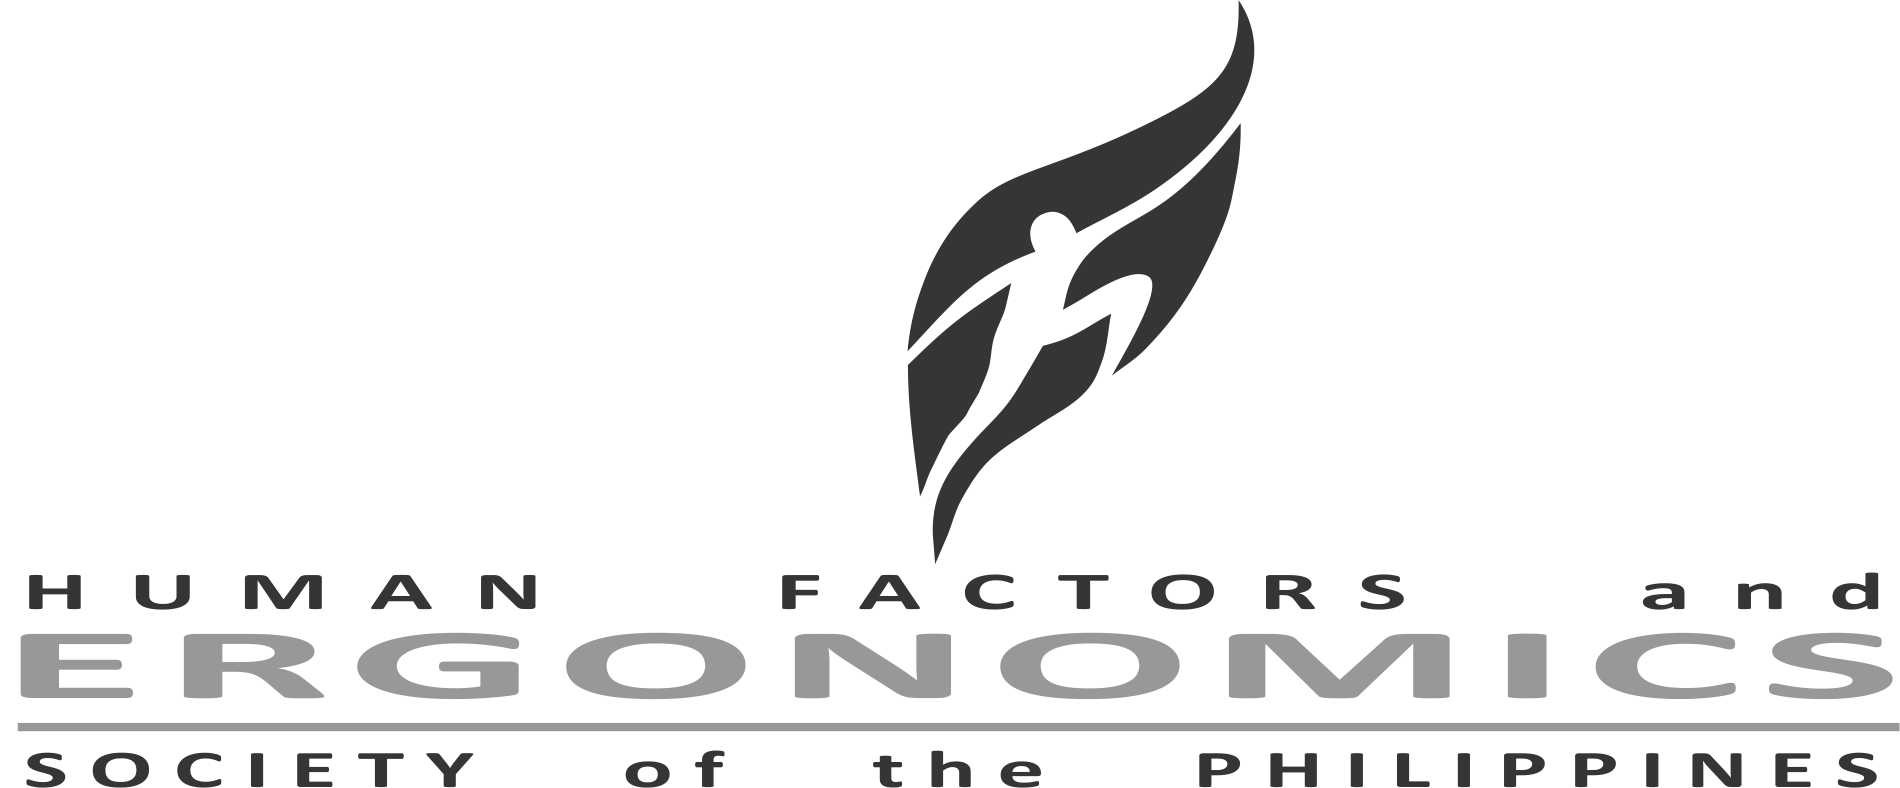 Human Factors and Ergonomics Society of the Philippines